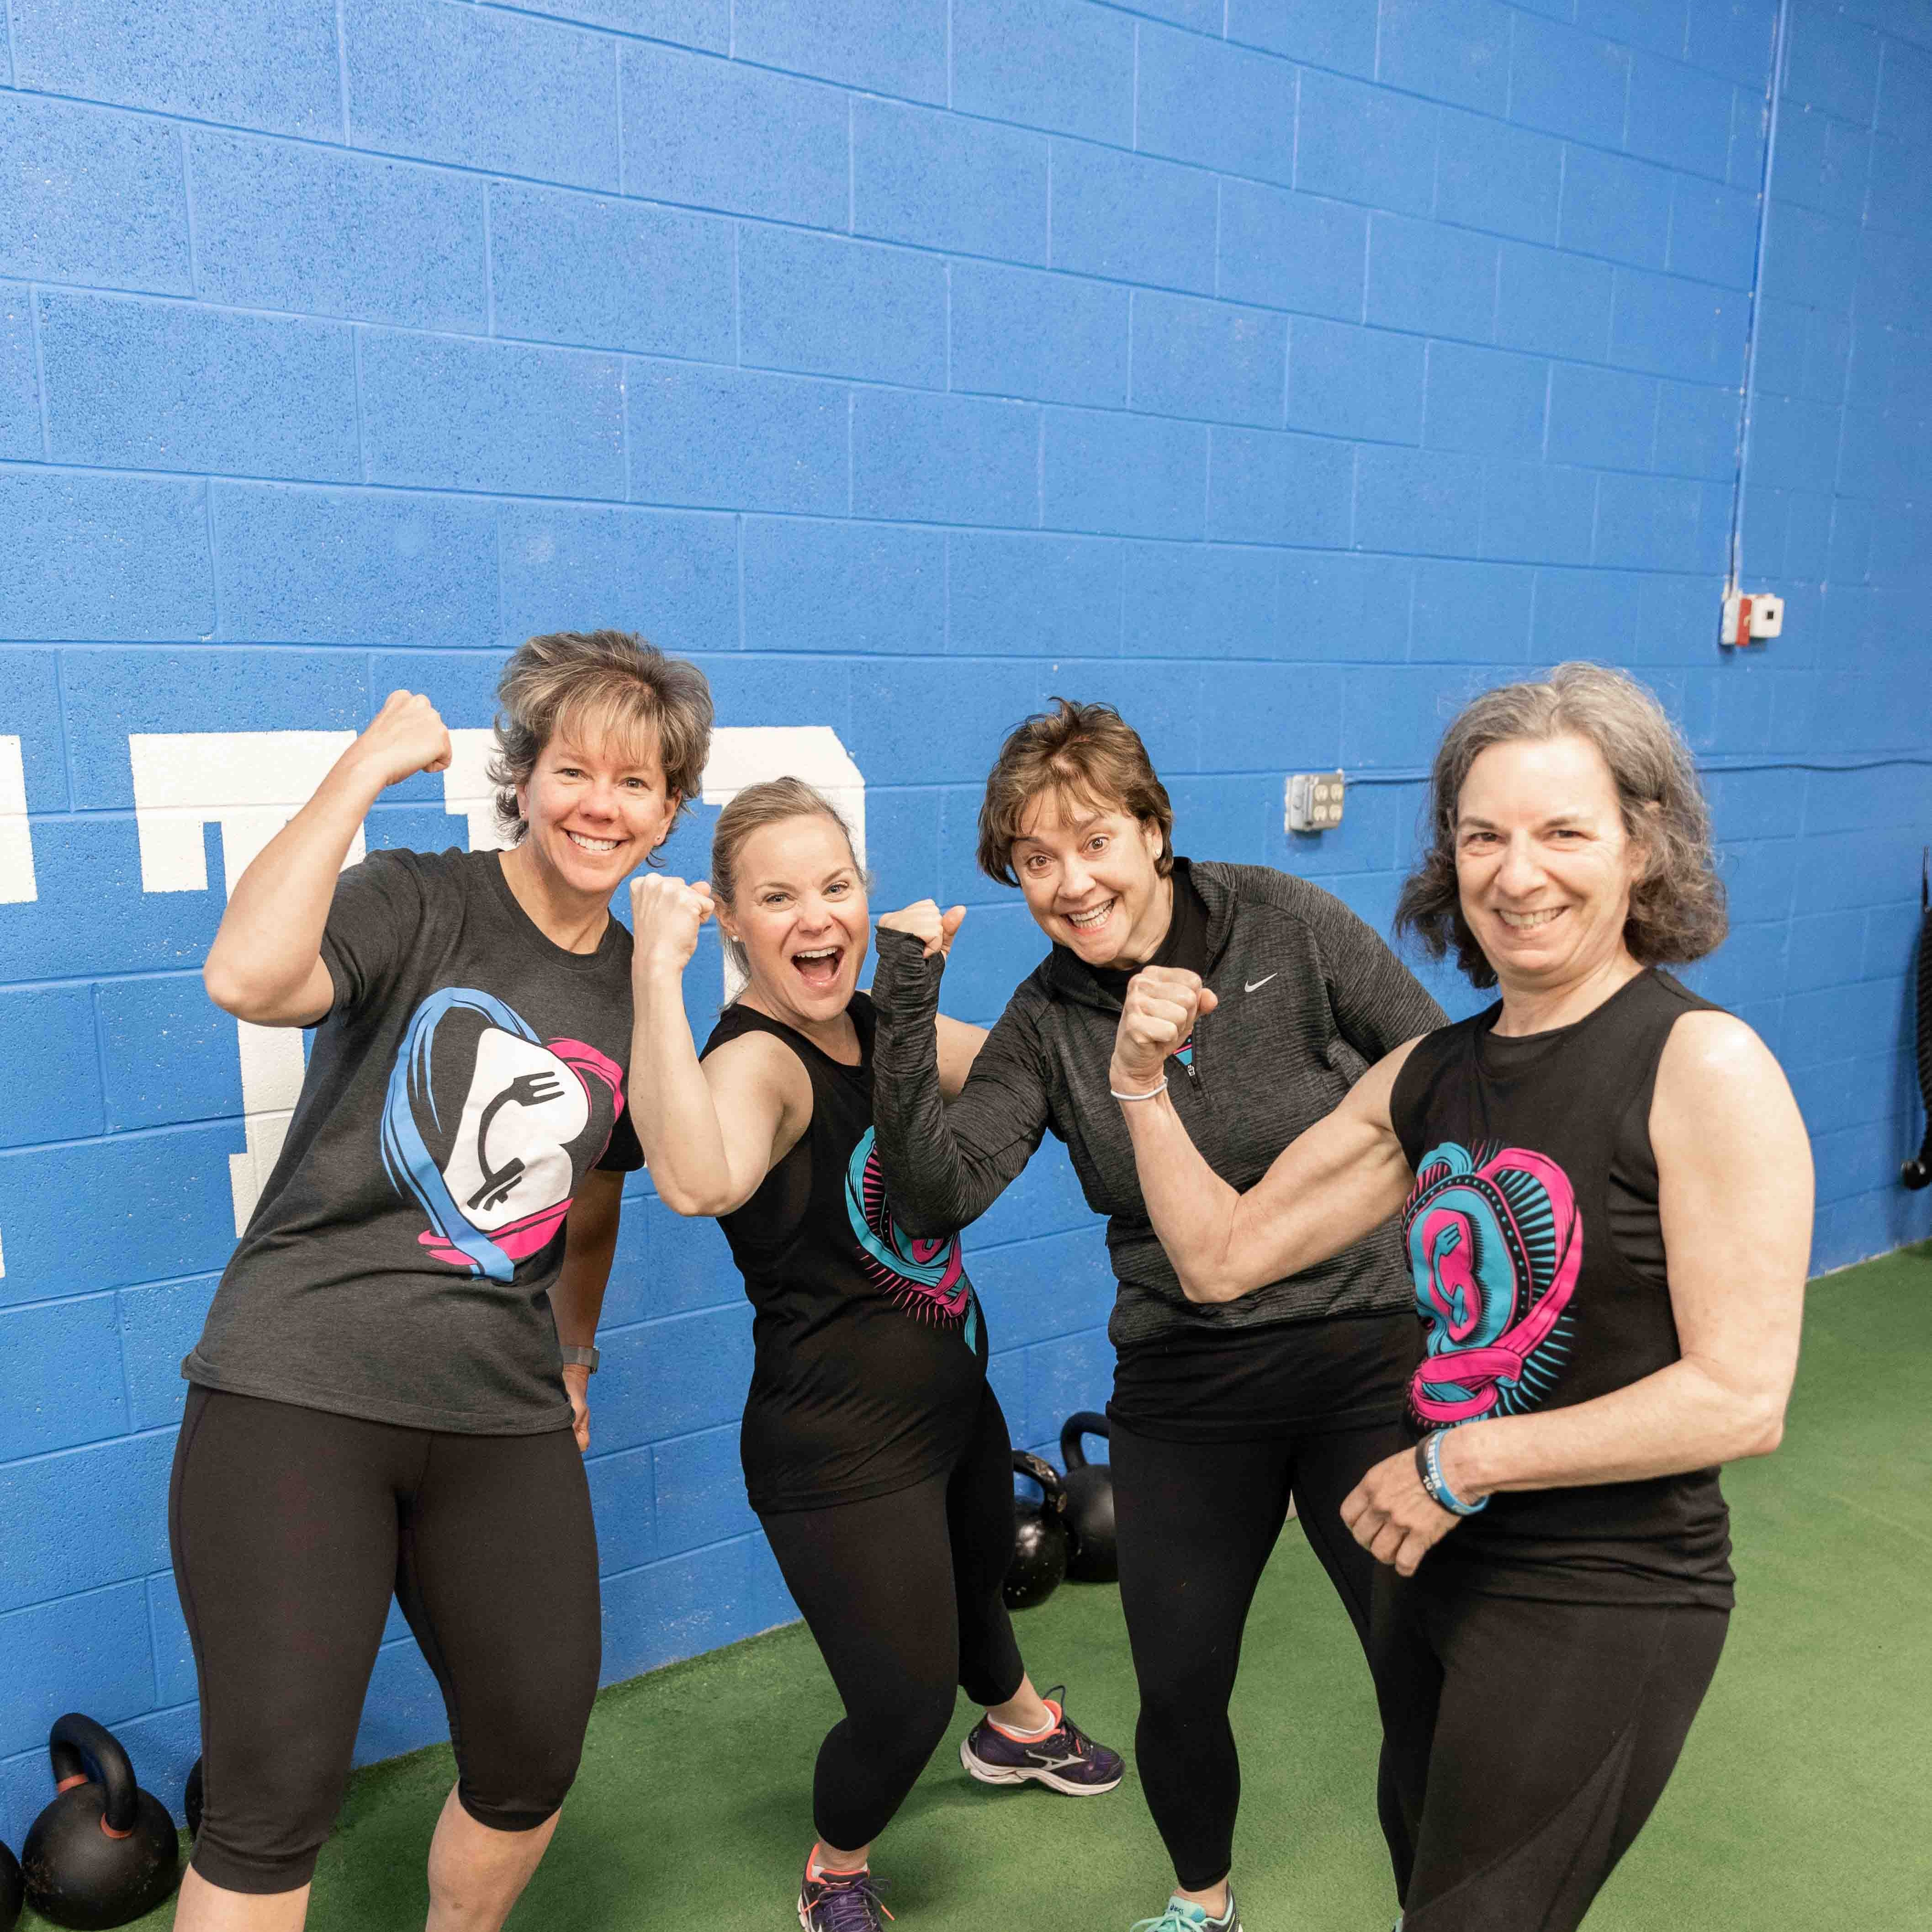 Bent On Better women's workouts in west chester best gym in west chester